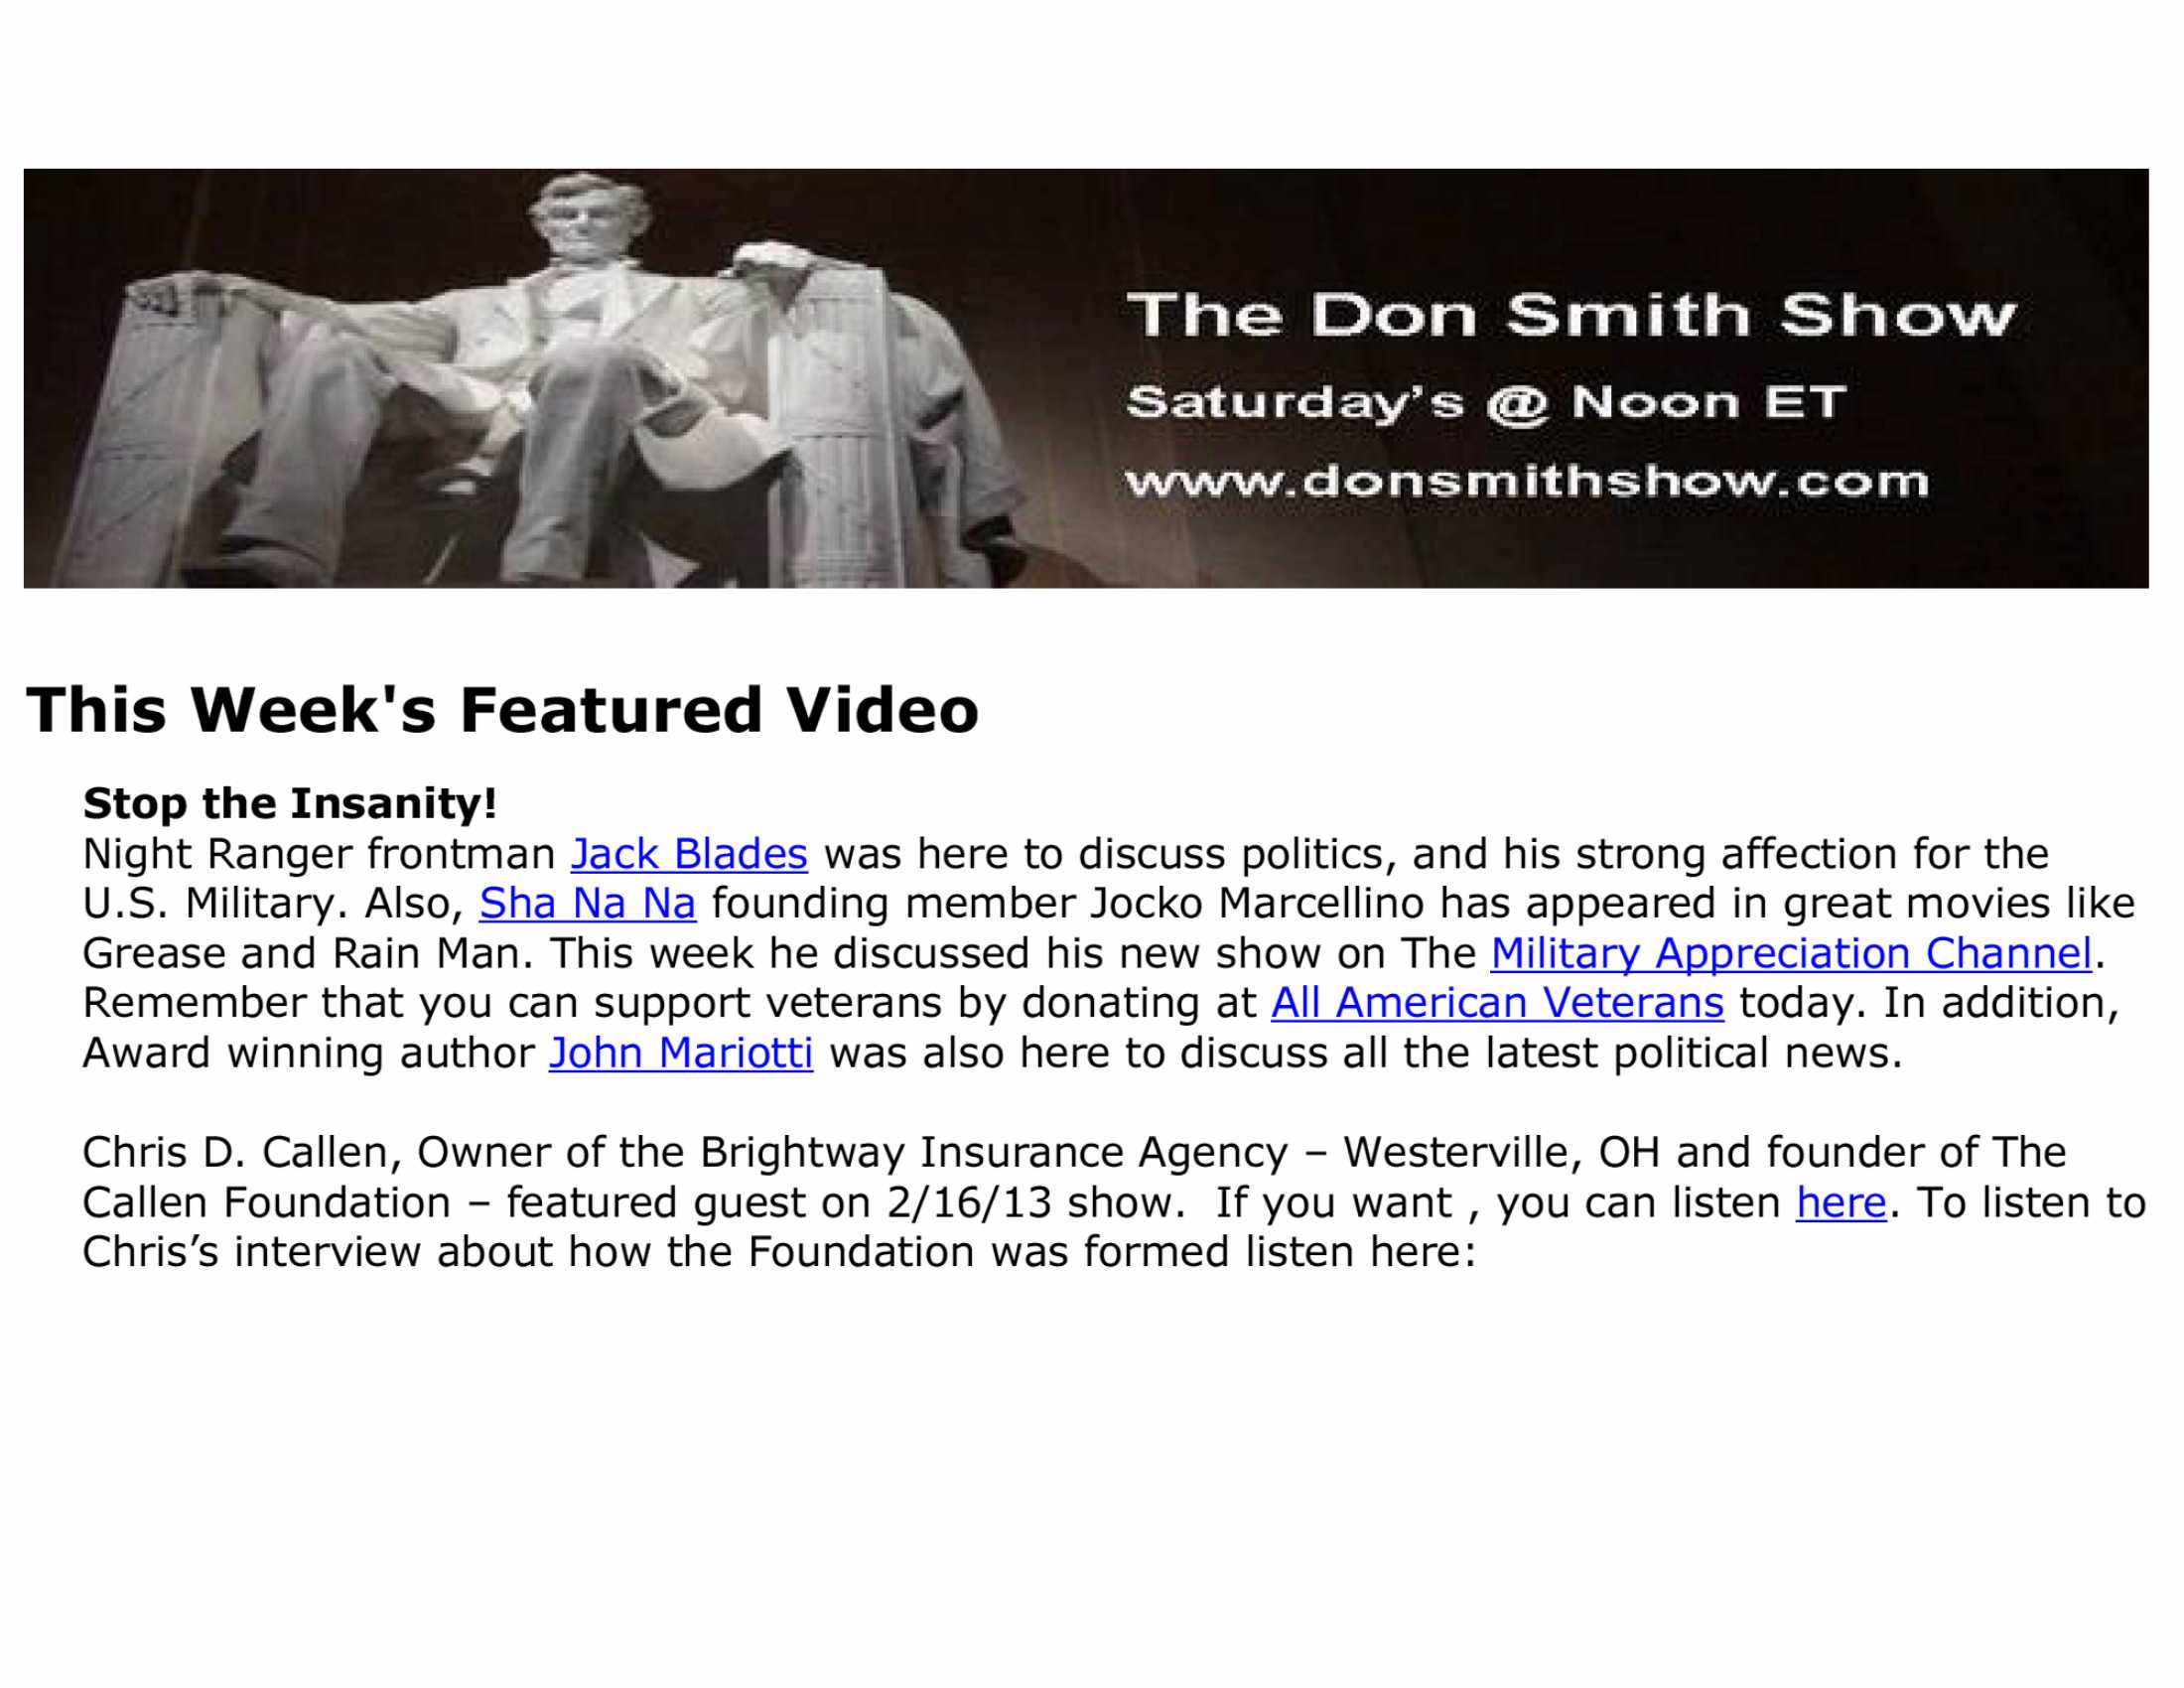 Don Smith Show - CDC Interview - 2-16-13